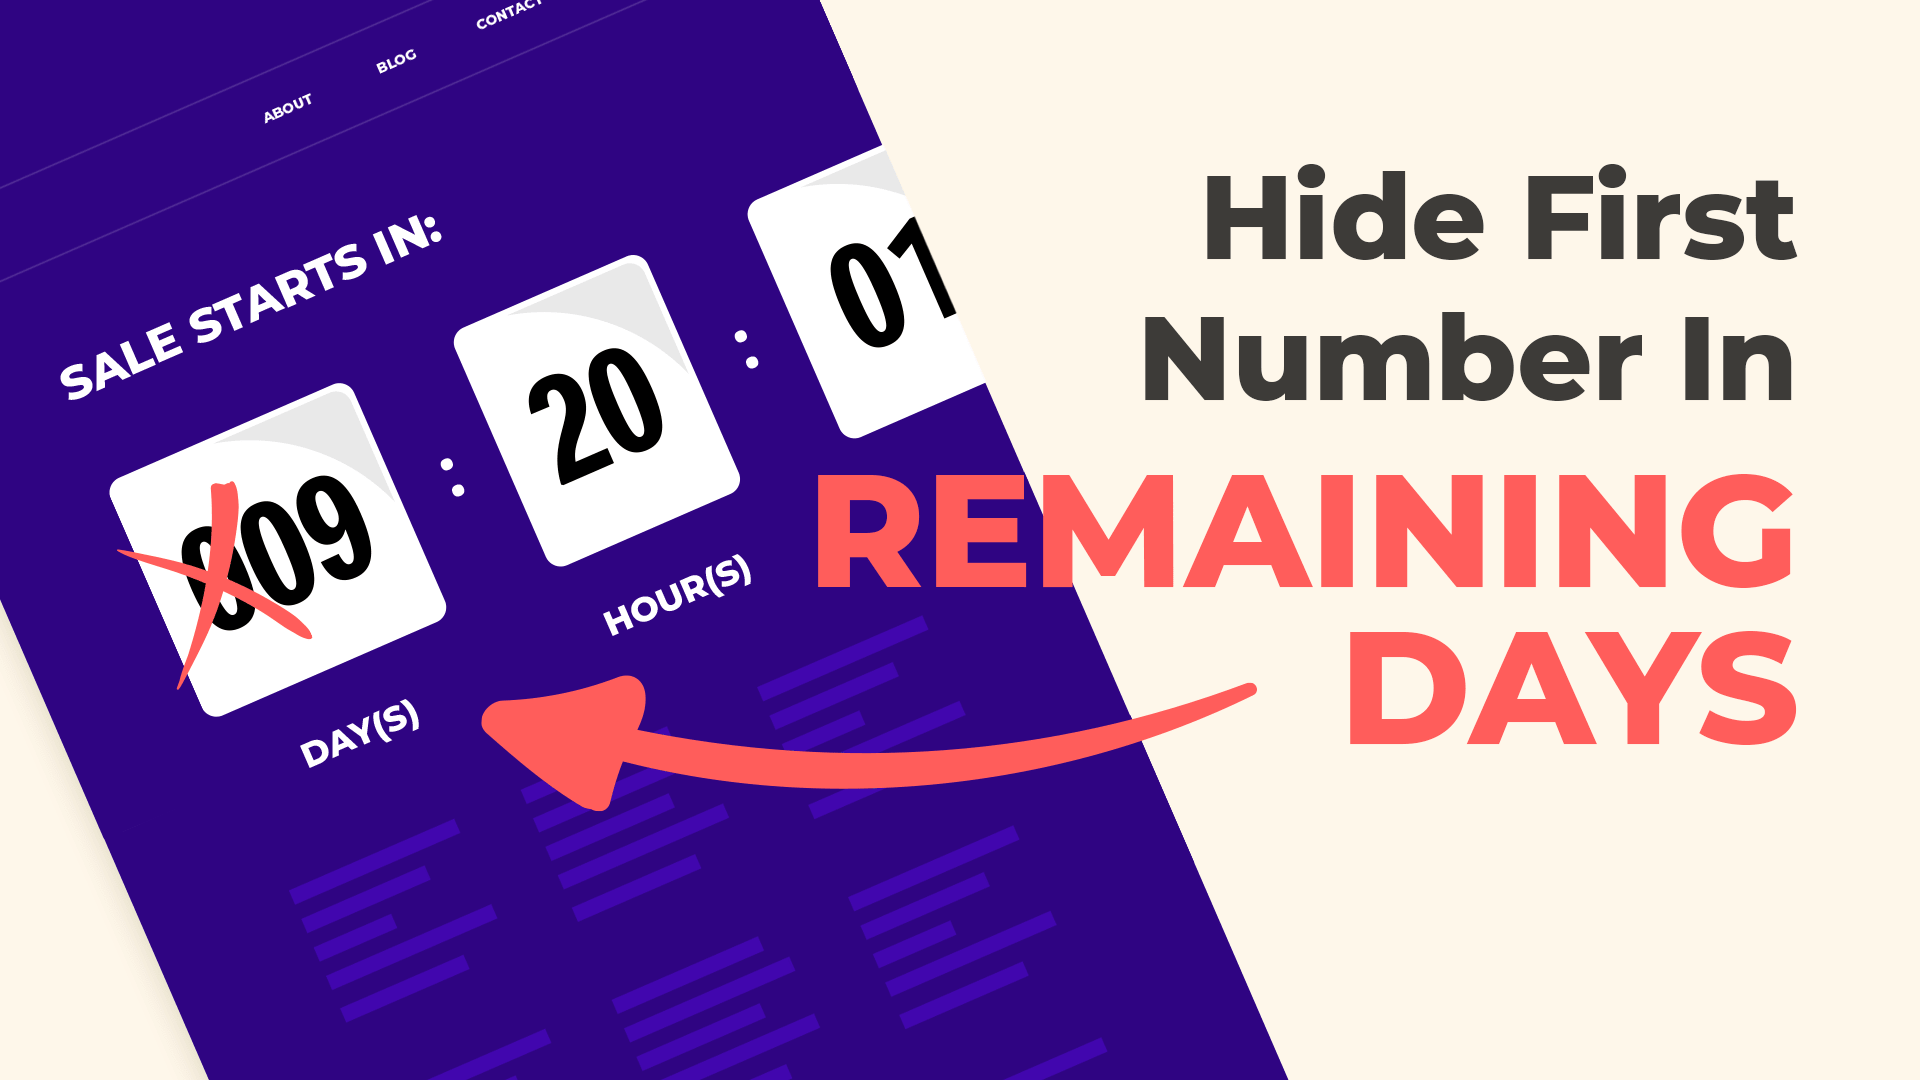 Divi Countdown Timer: Hide First Number in Remaining Days